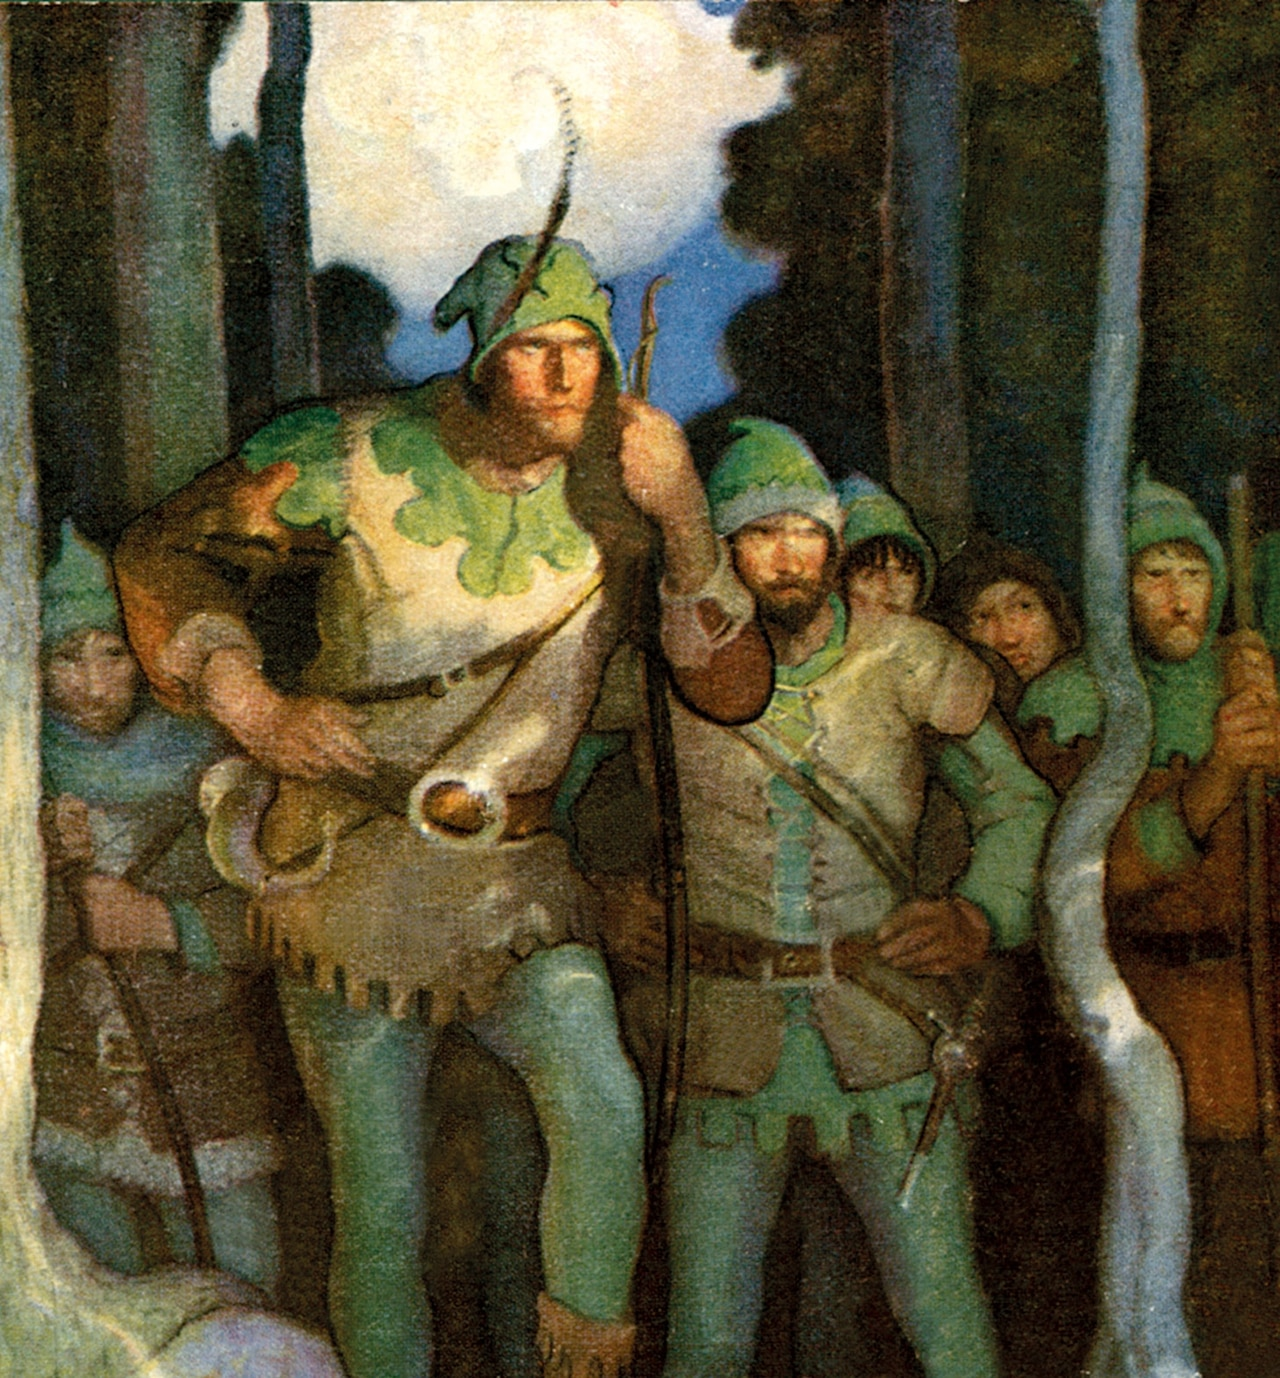 an oil painting of Robin Hood and his men in Sherwood Forest